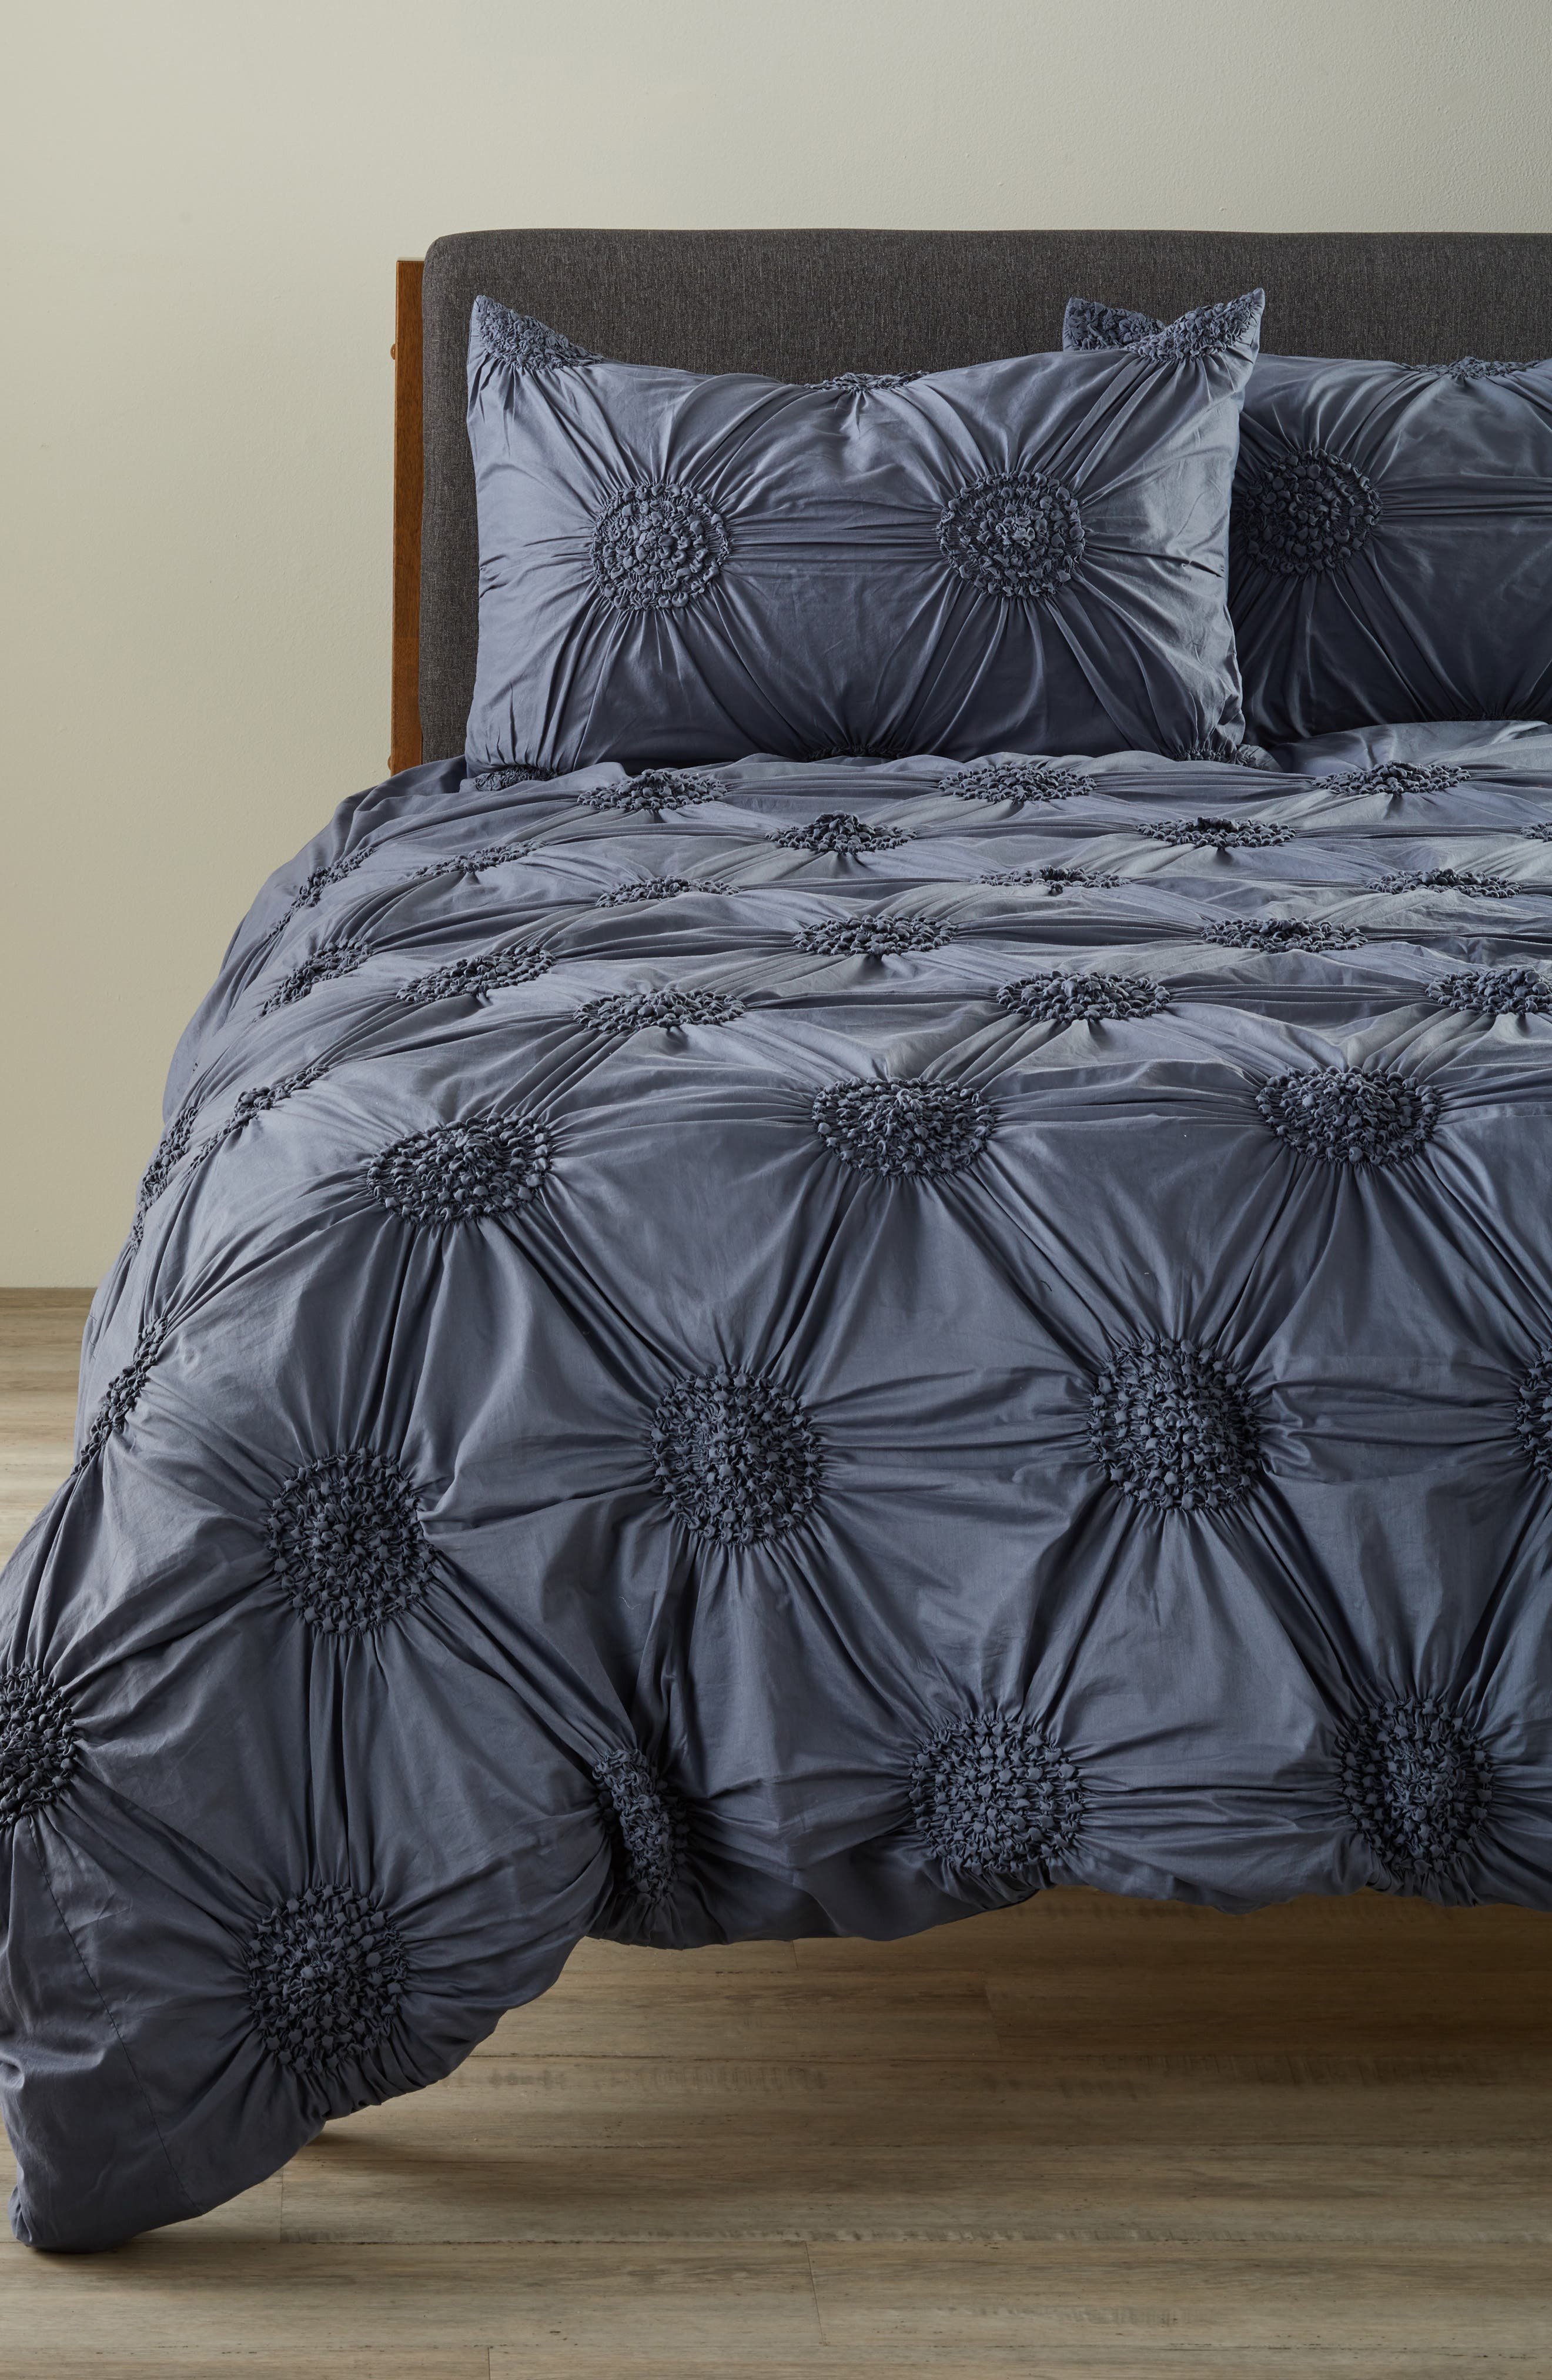 nordstrom at home duvet cover